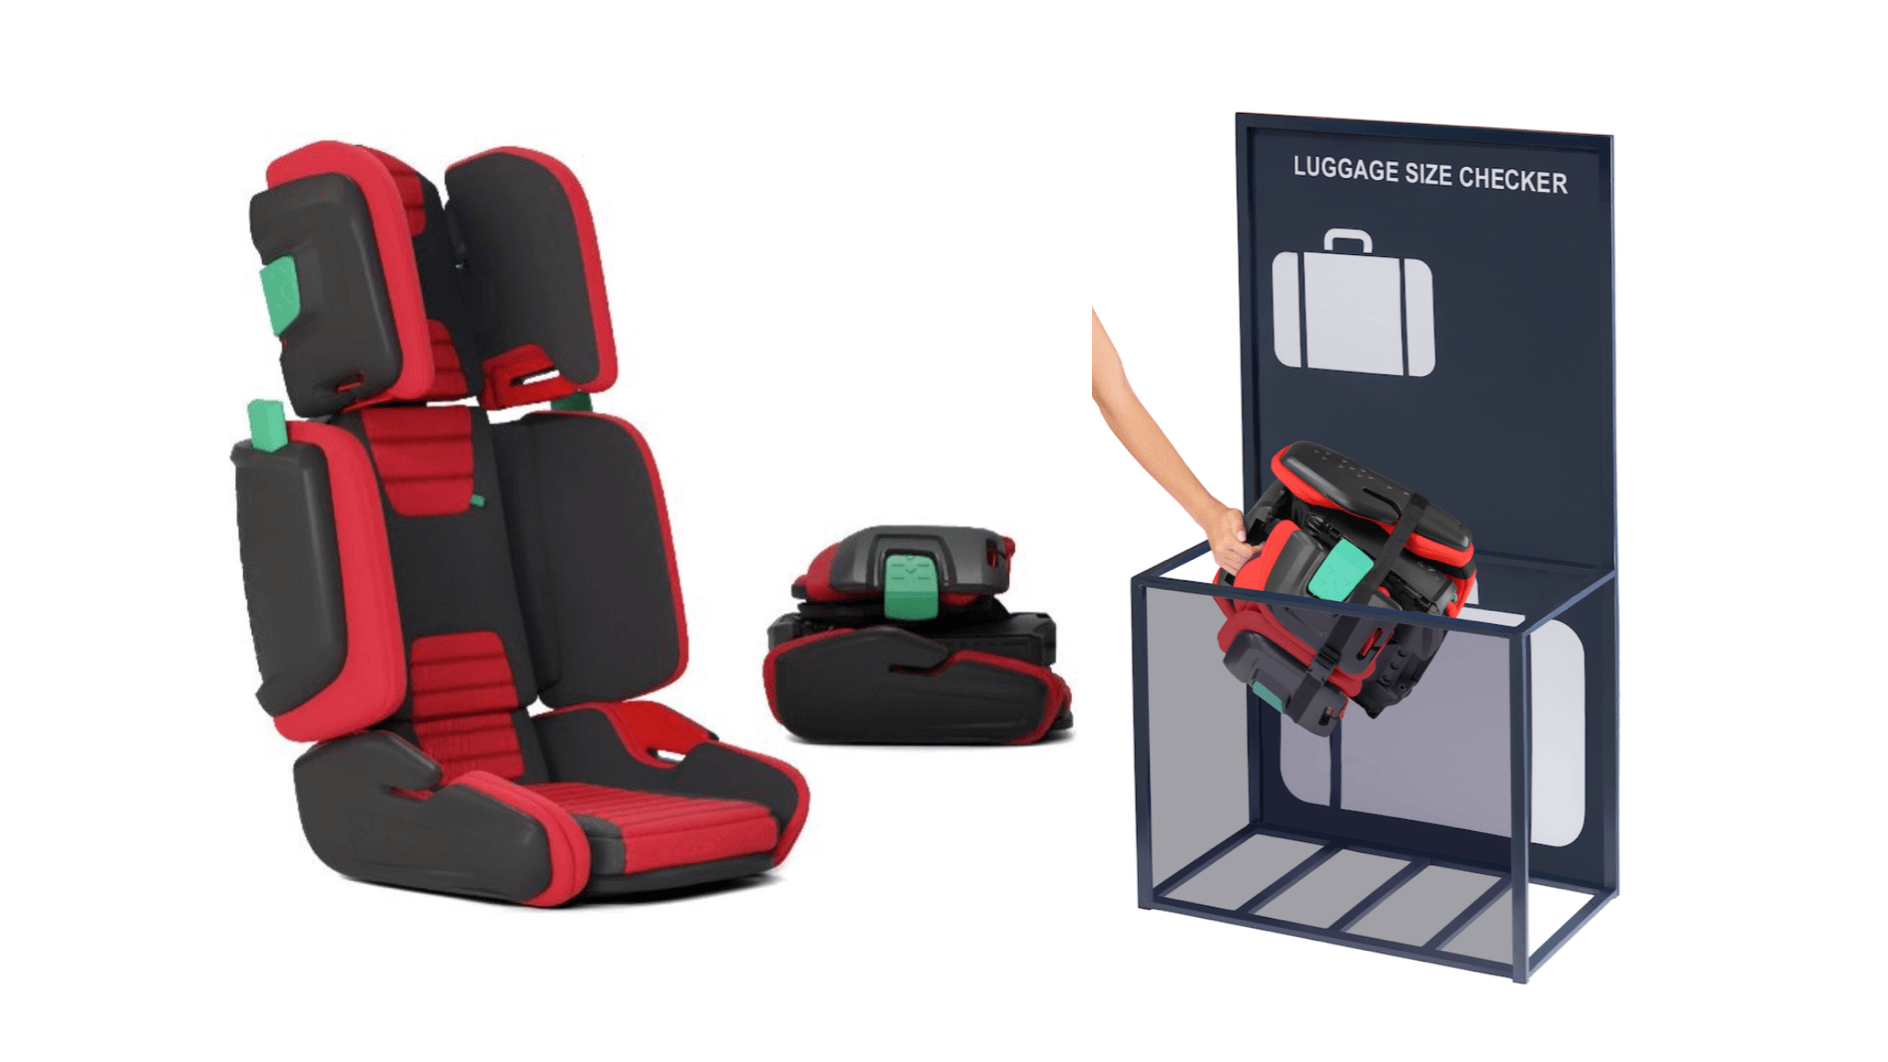 Sensational The Hifold High Back Travel Booster Seat A Foldable Light Ncnpc Chair Design For Home Ncnpcorg